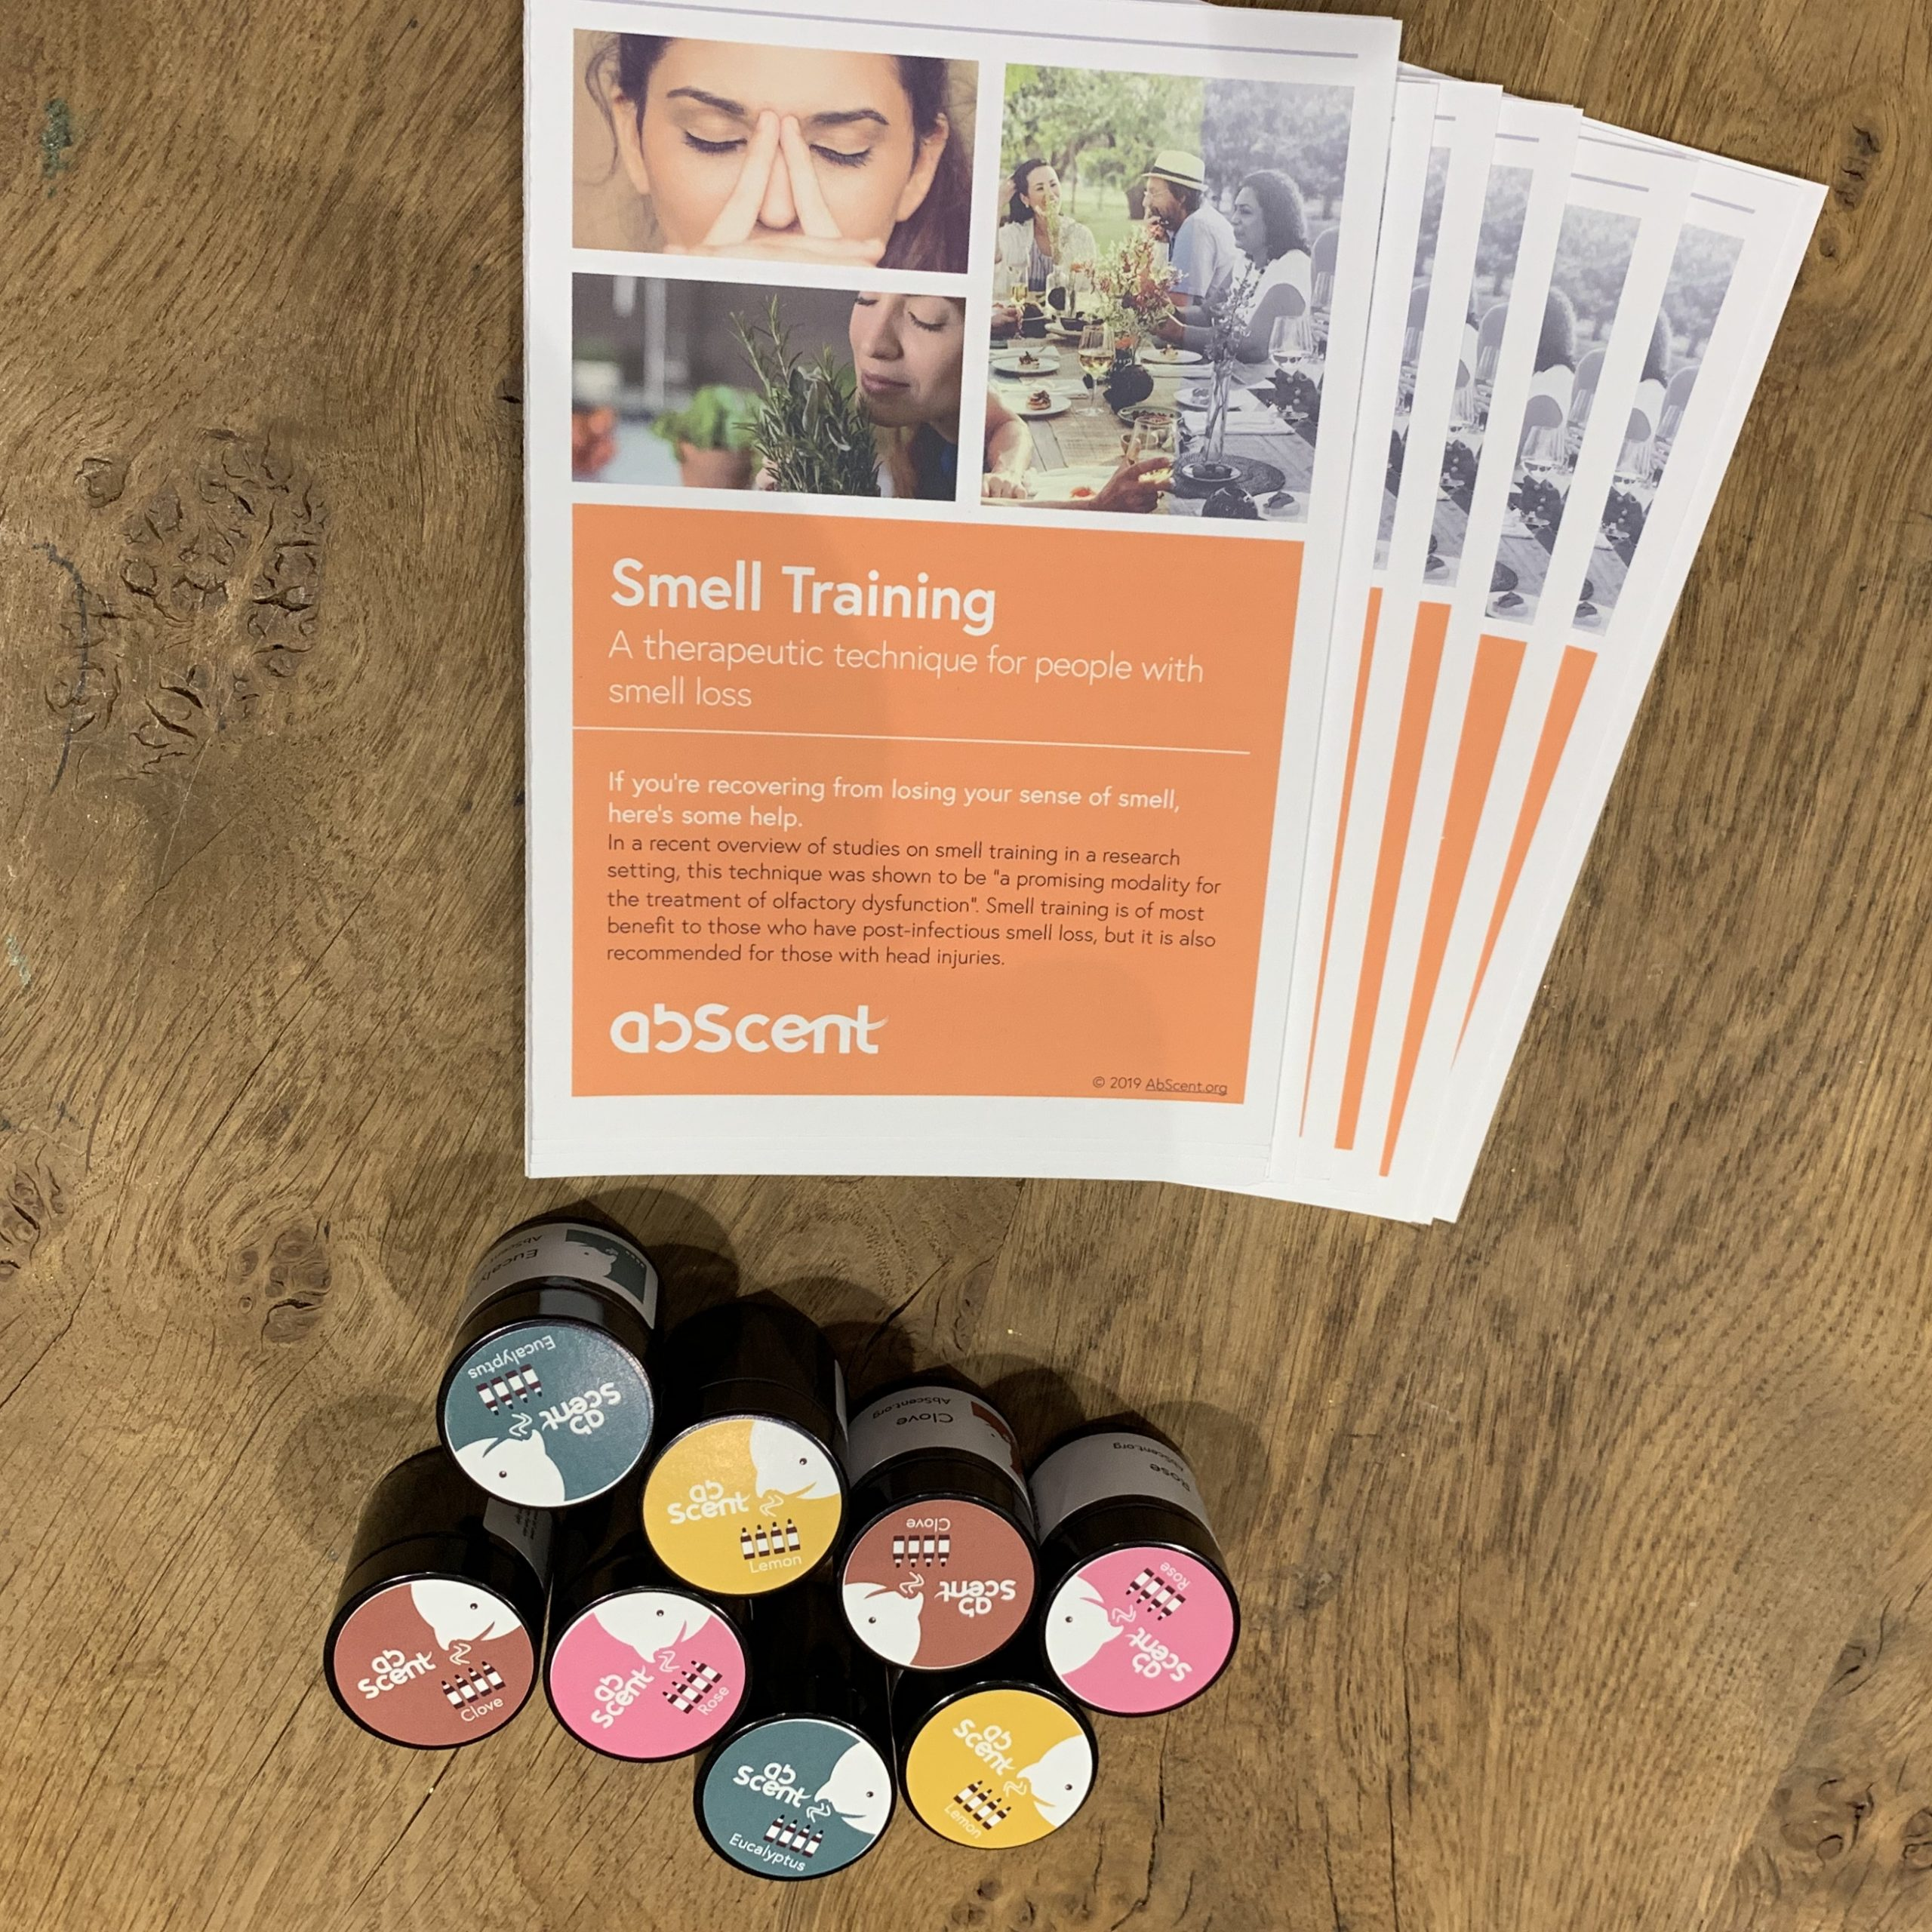 AbScent literature and smell training jars